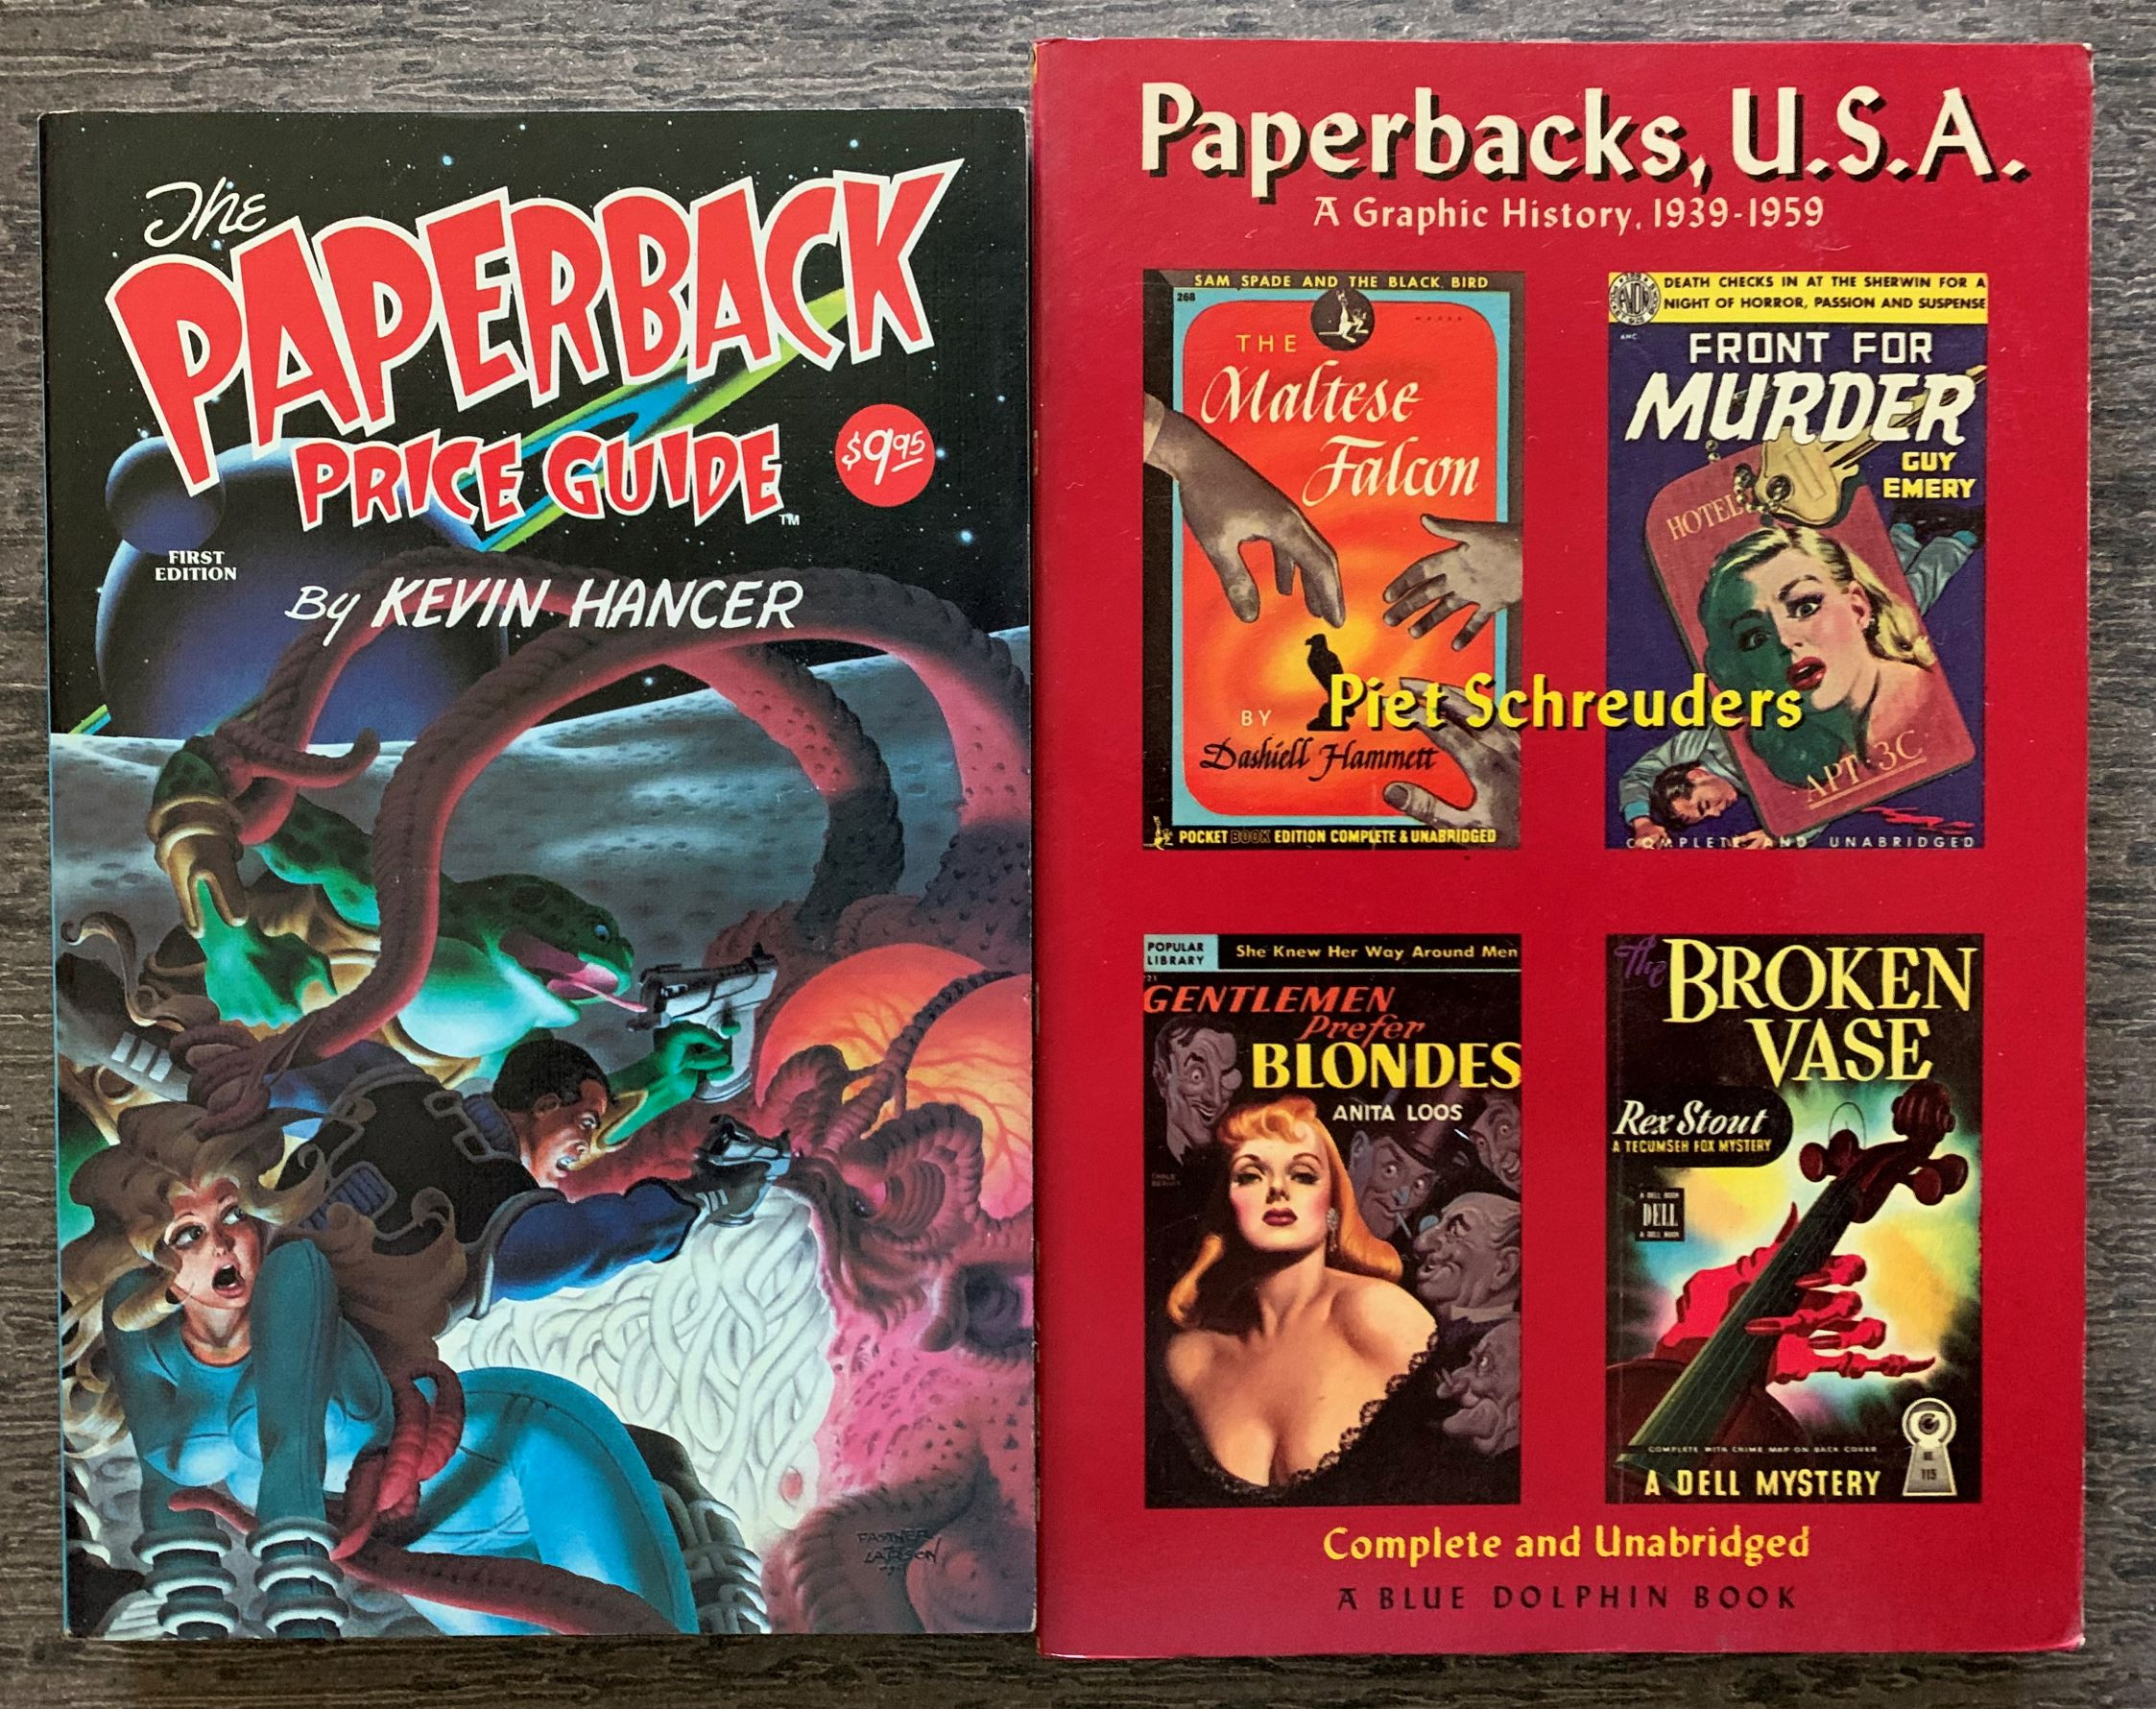 Image for [Two Titles] The Paperback Price Guide, together with; Paperbacks, U. S. A., A Graphic History, 1939-1959.